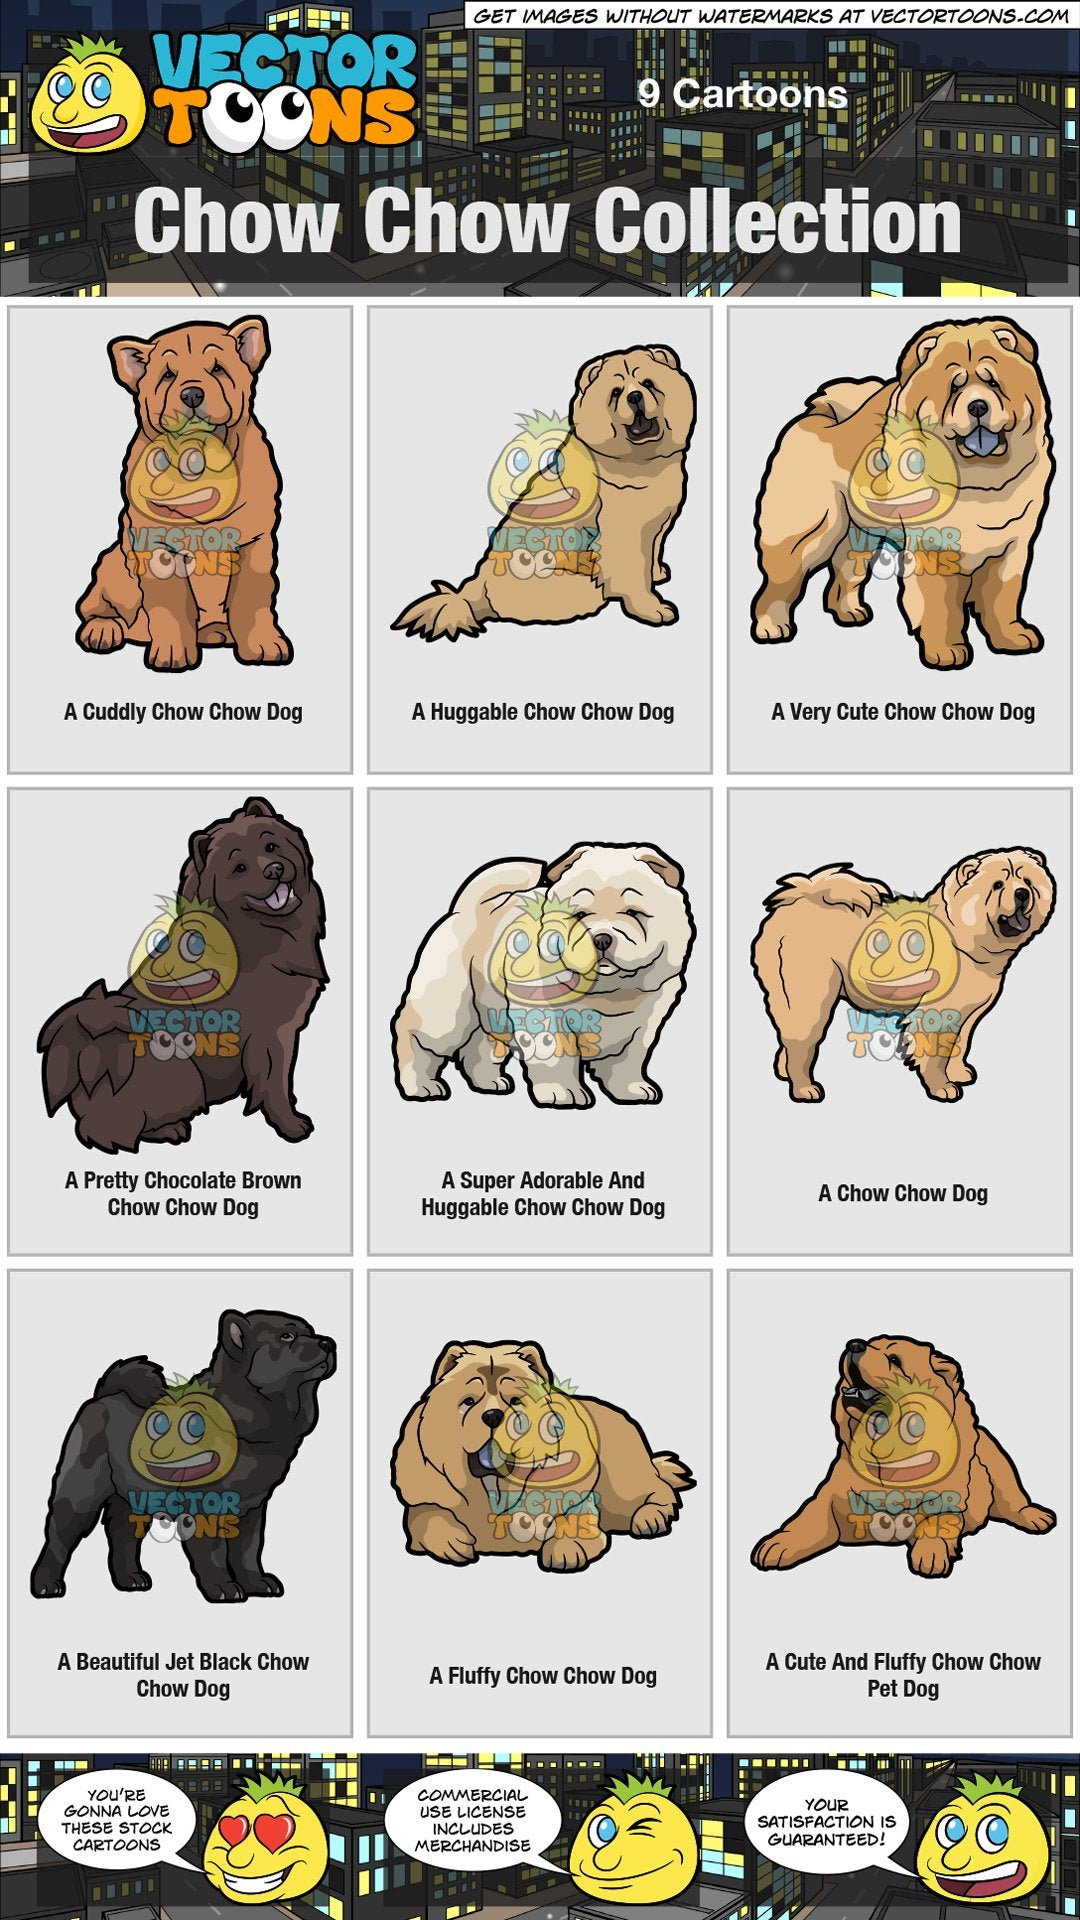 Chow Chow Collection